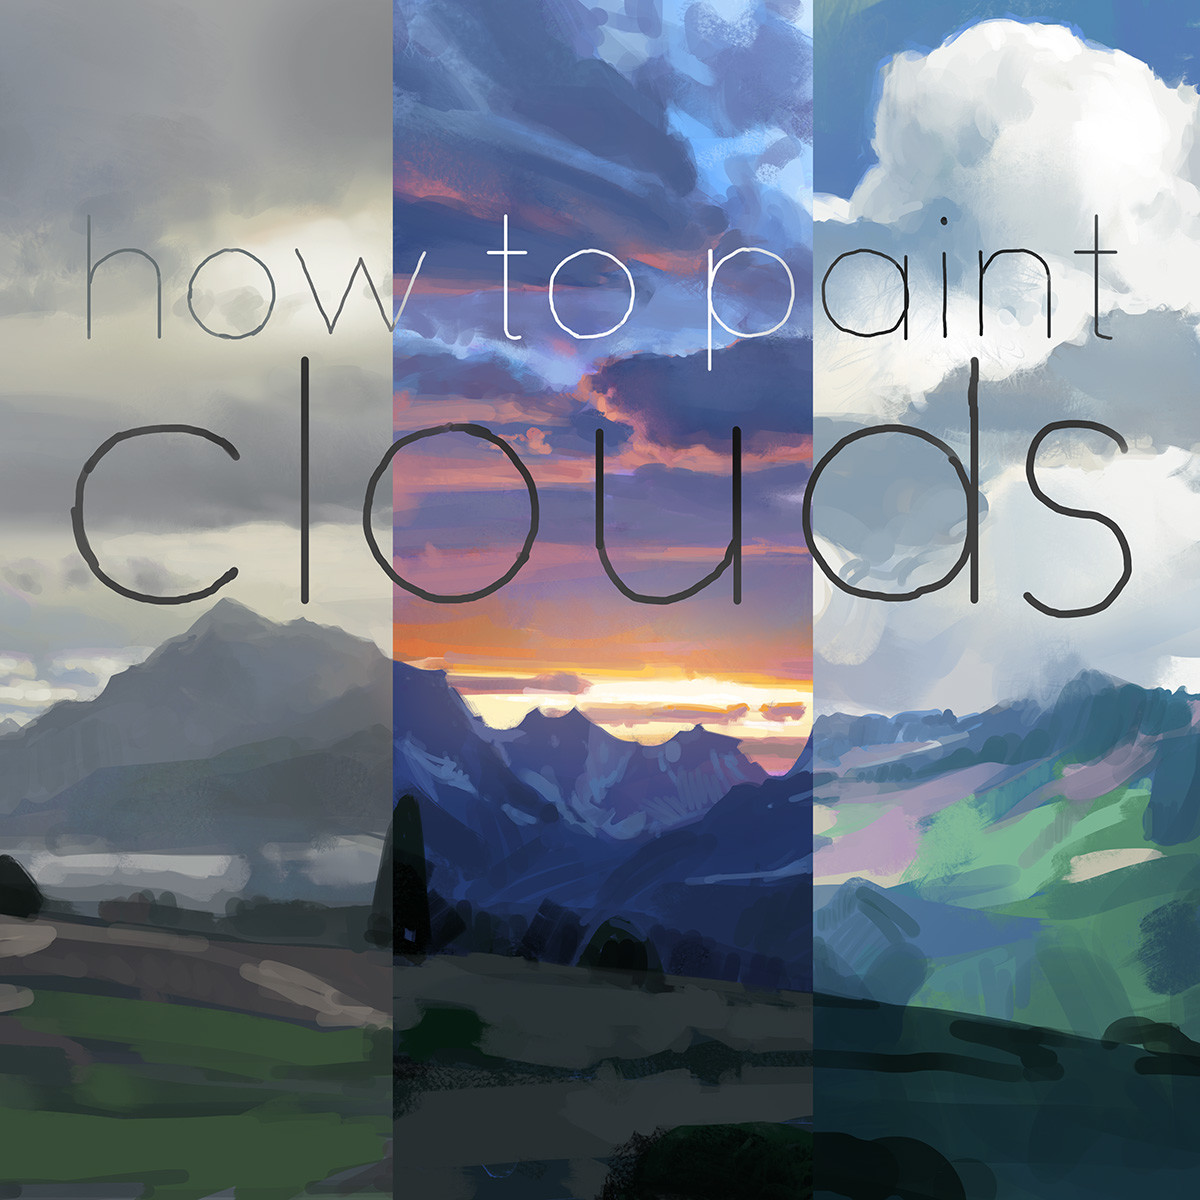 Gumroad tutorial, How to paint clouds!